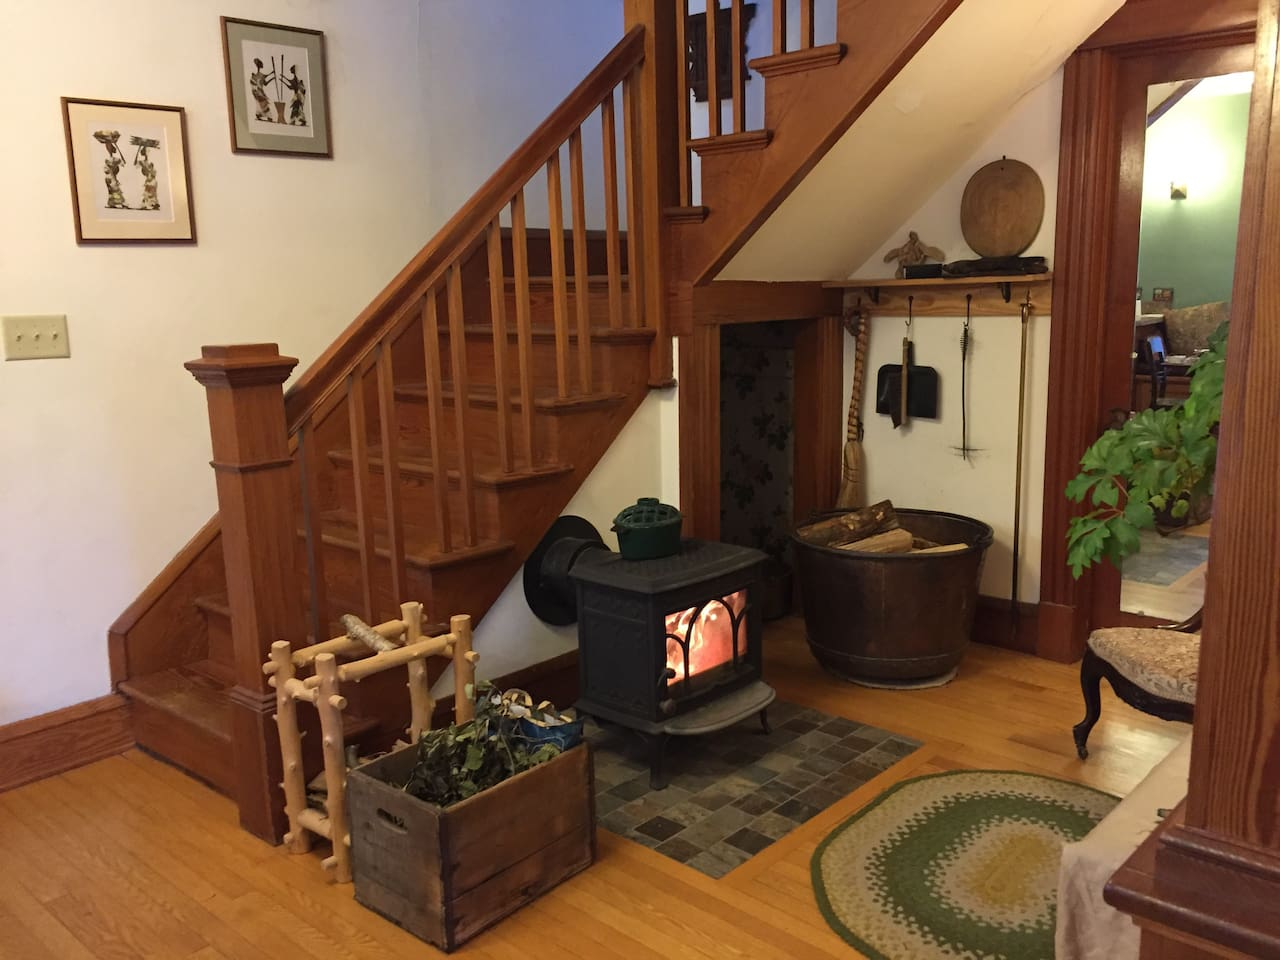 Our shared wood stove area is a warm and cozy place to be in winter!